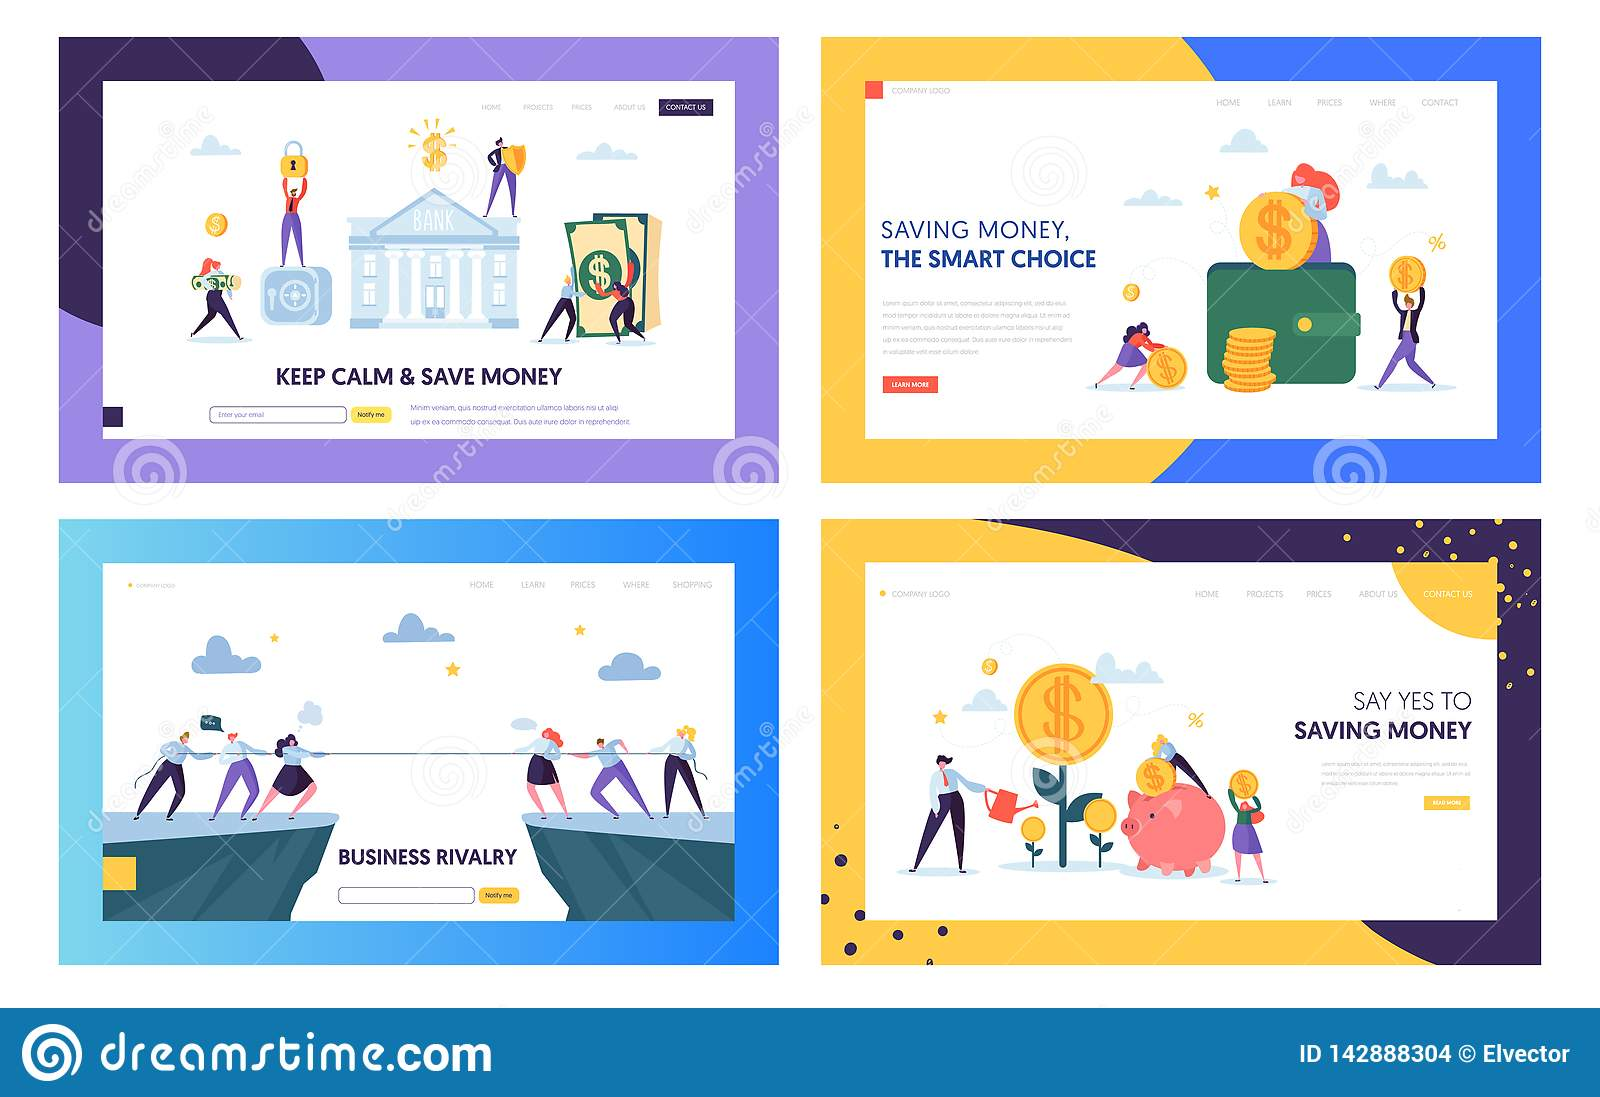 Keep Calm and Save Money Landing Page Set. Smart Choice in Business Rivalry, Earning and Keeping Capital for Company